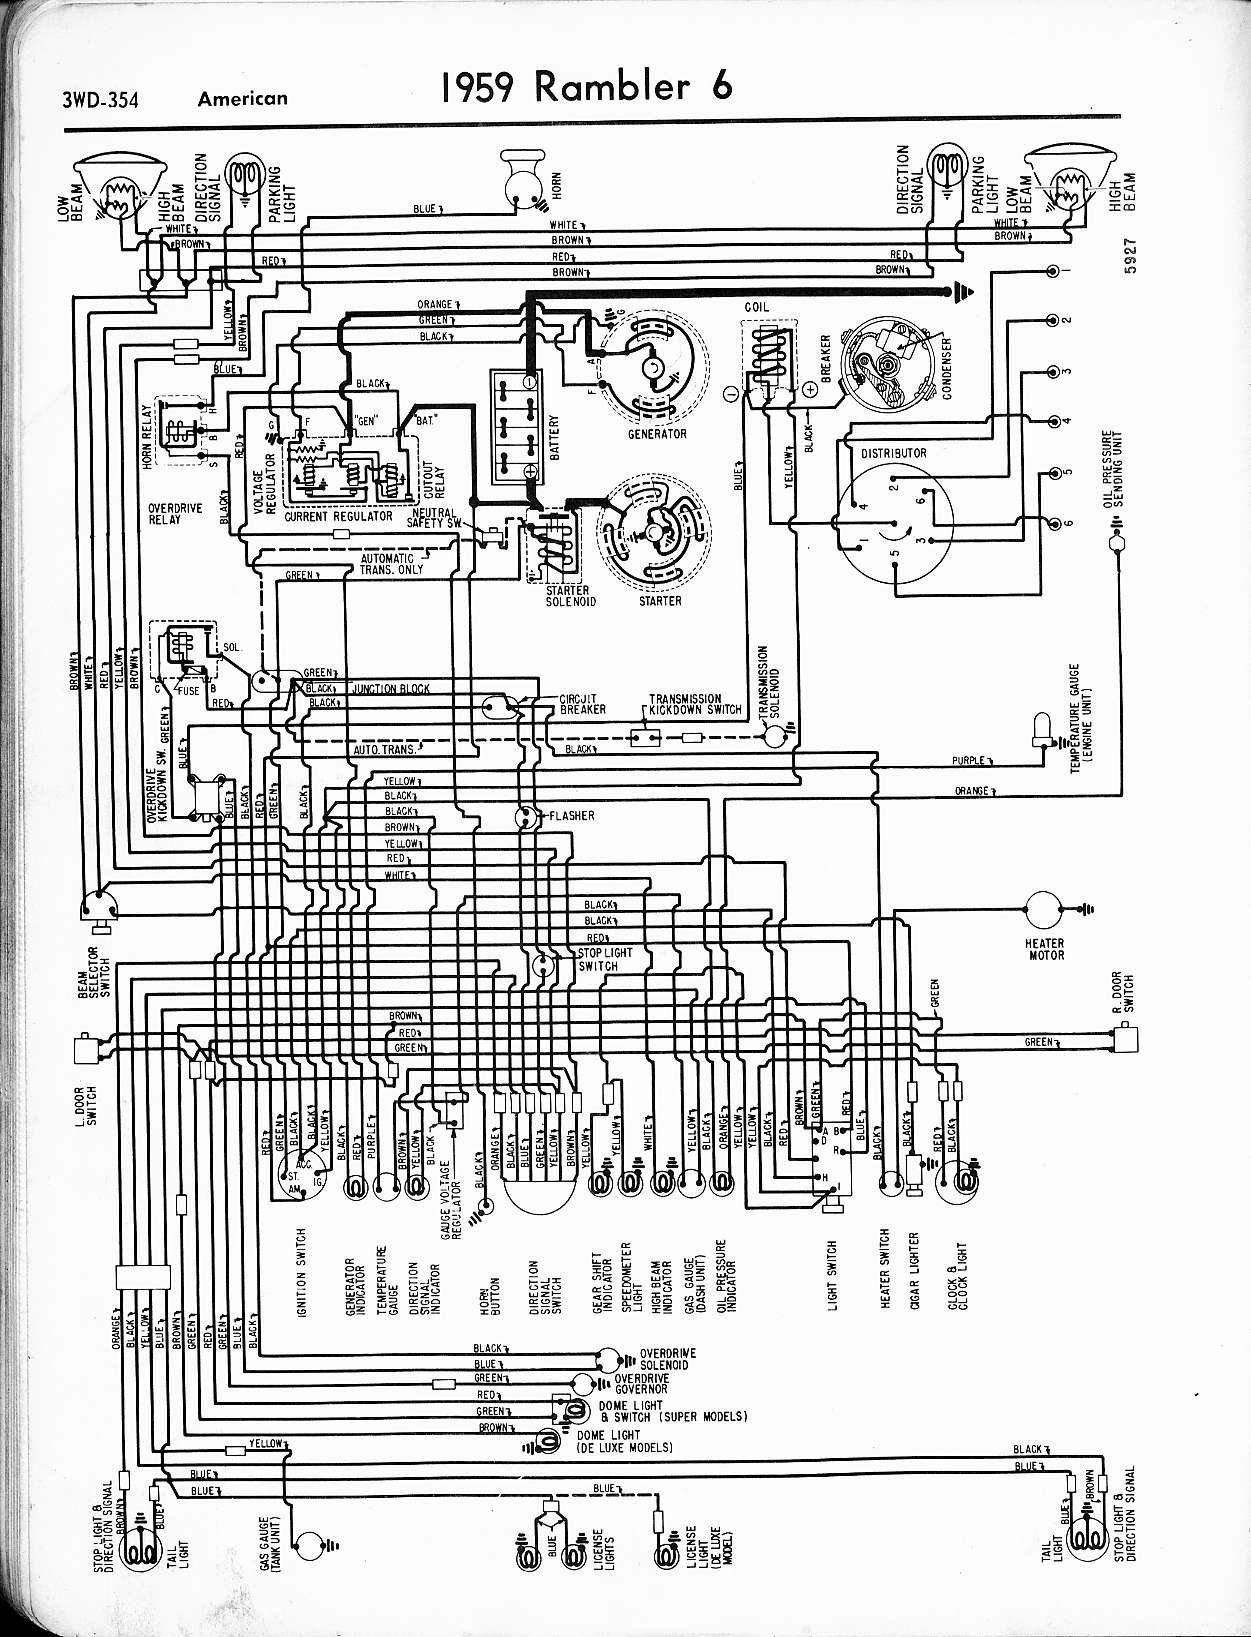 1964 impala ac wiring diagram free download wiring diagram 1995 Dodge Ram Wiring Diagram 1964 impala ac wiring diagram free download